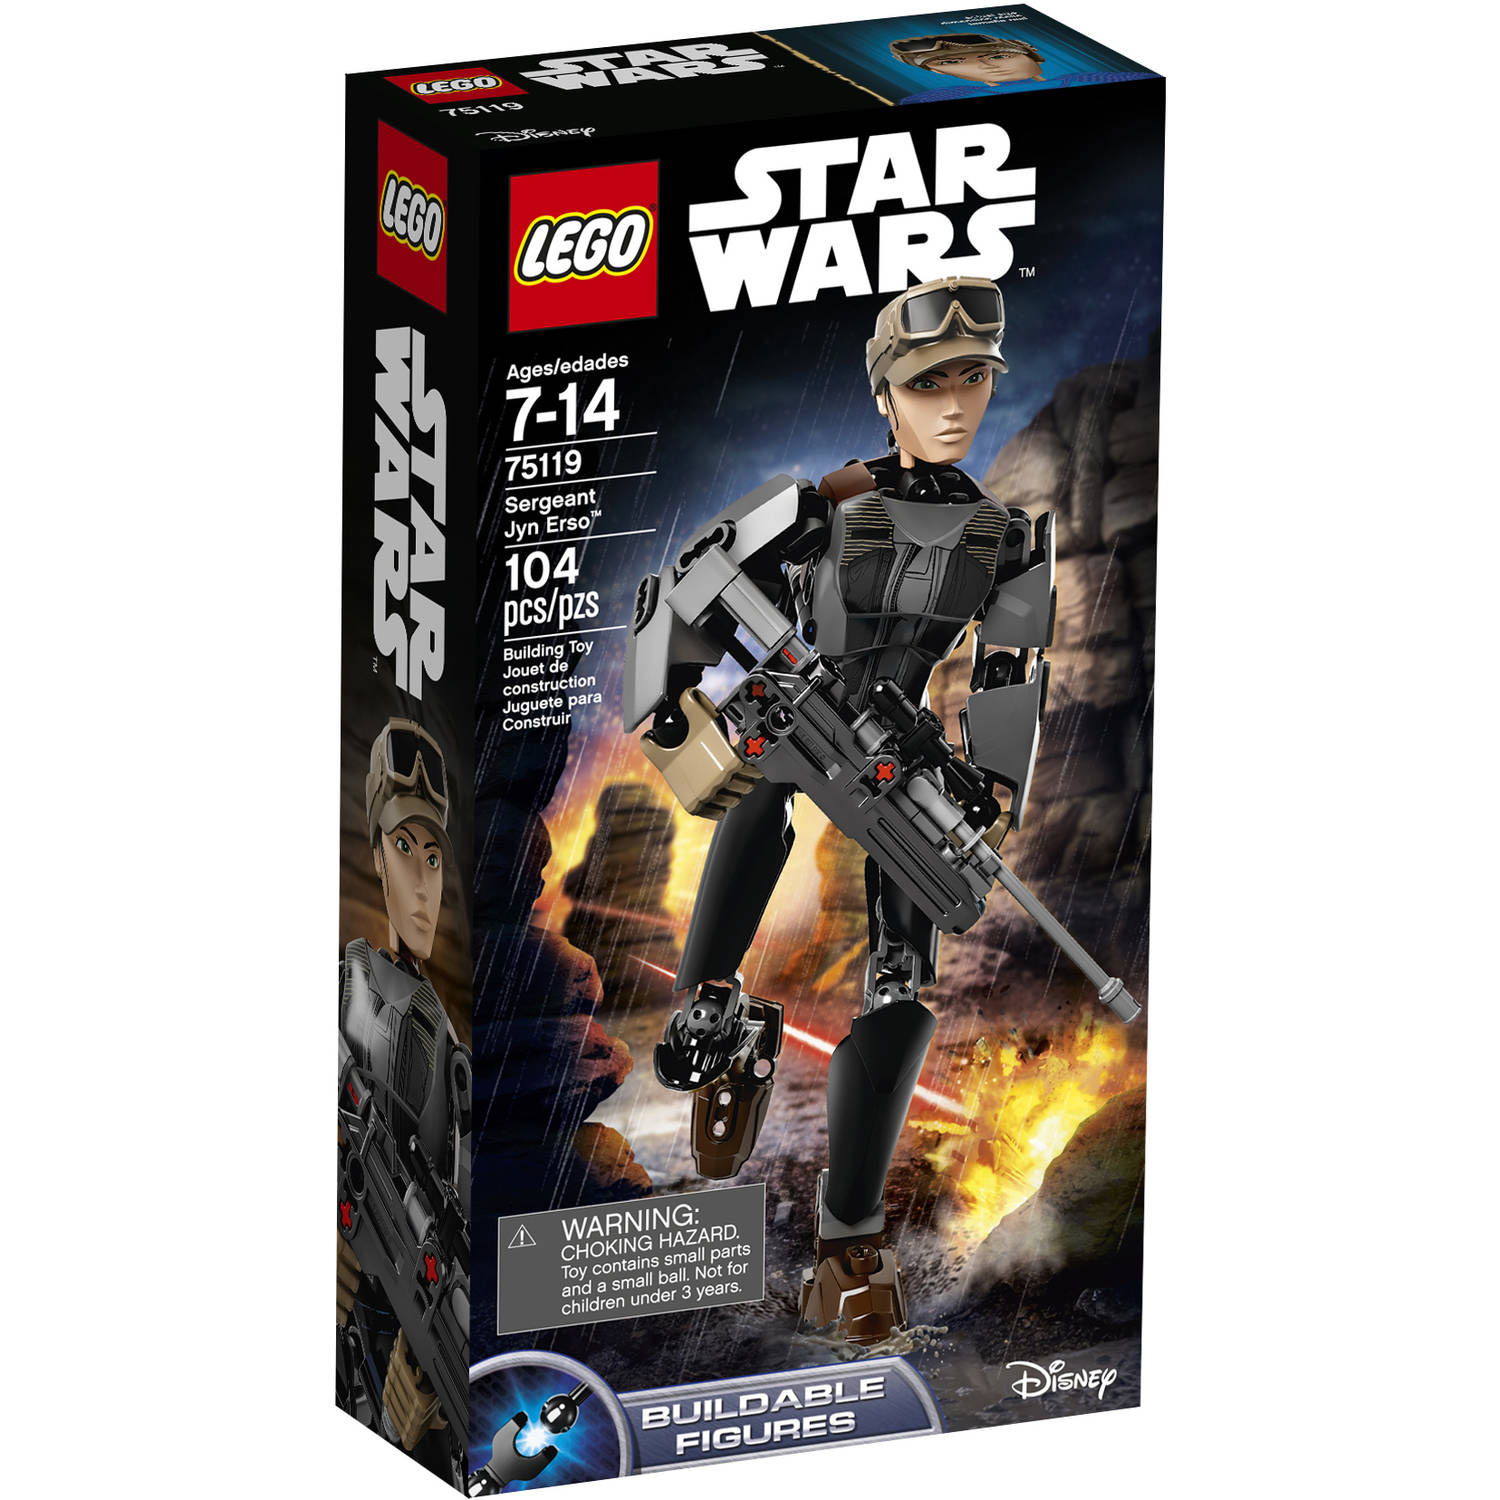 LEGO Constraction Star Wars Sergeant Jyn Erso 75119